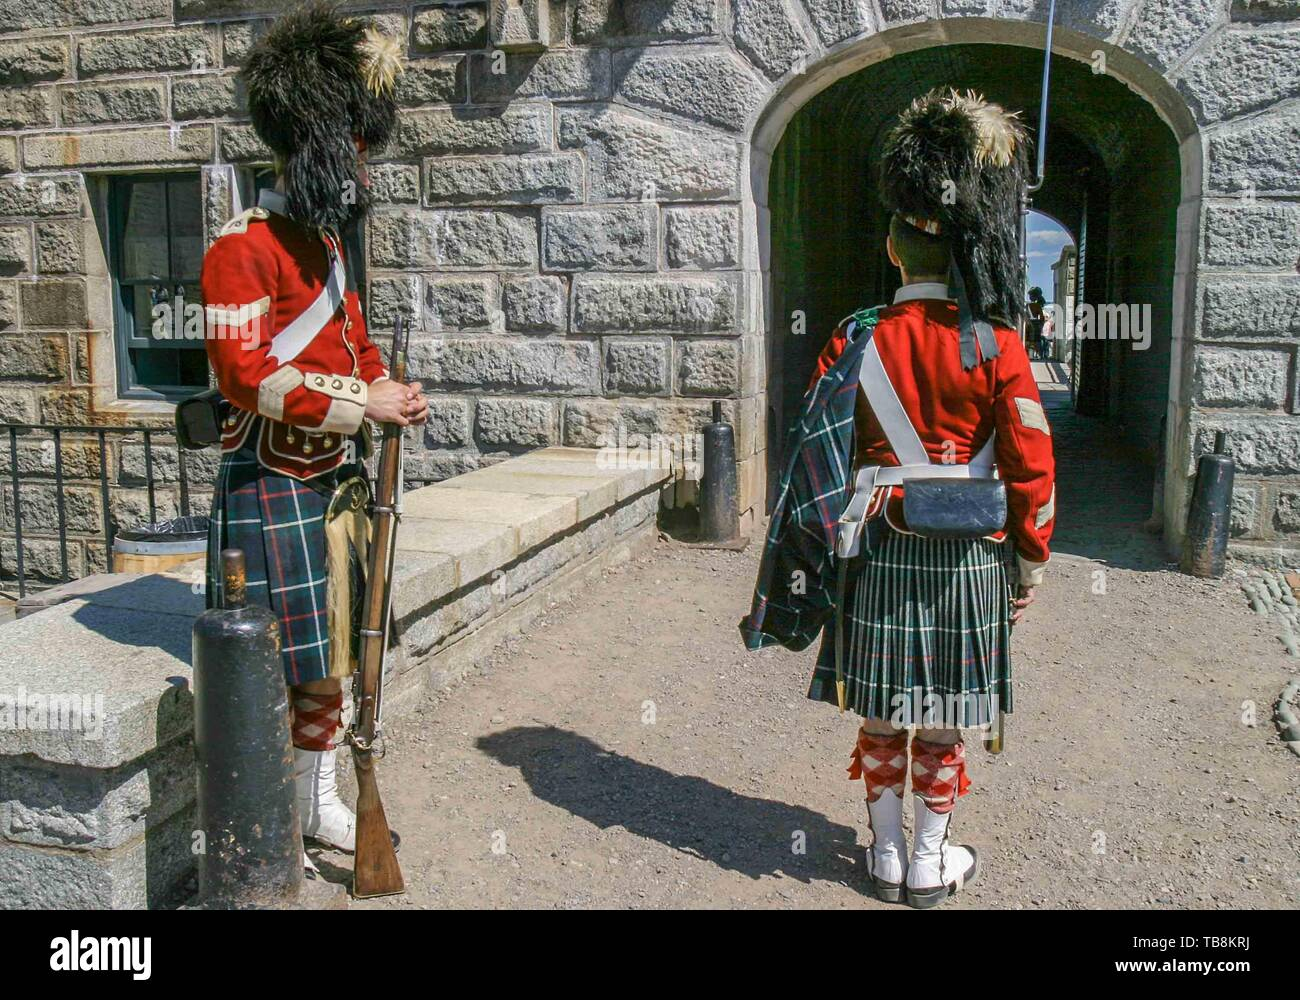 Halifax, Nova Scotia, Canada. 5th Sep, 2005. A changing of the guard by re-enactors dressed as soldiers of the 78th Highland Regiment, on Citadel Hill (Fort George), a National Historic Site in Halifax, Nova Scotia. A living history museum, the fort is among the most visited sites in Atlantic Canada. Credit: Arnold Drapkin/ZUMA Wire/Alamy Live News - Stock Image